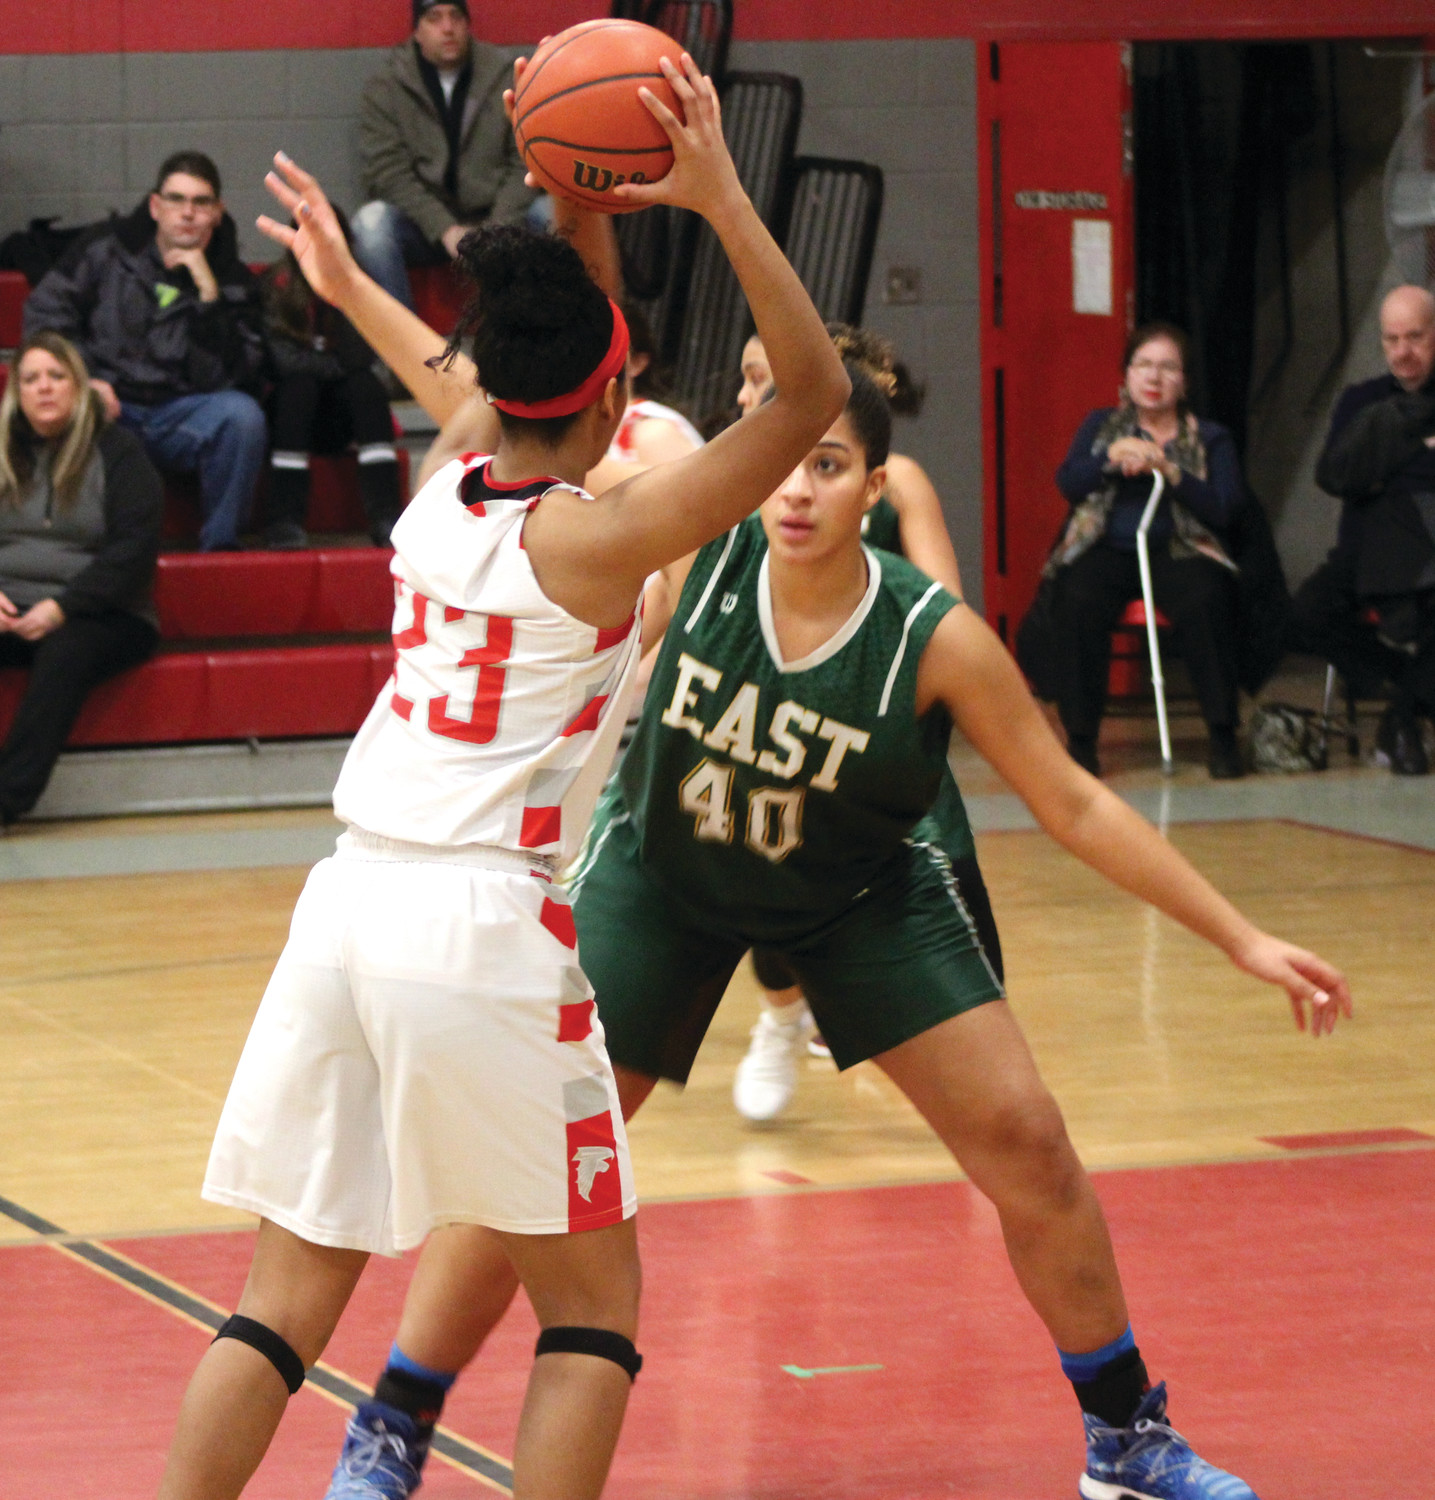 East's Maia Caito guards West's Mia James during the first half.